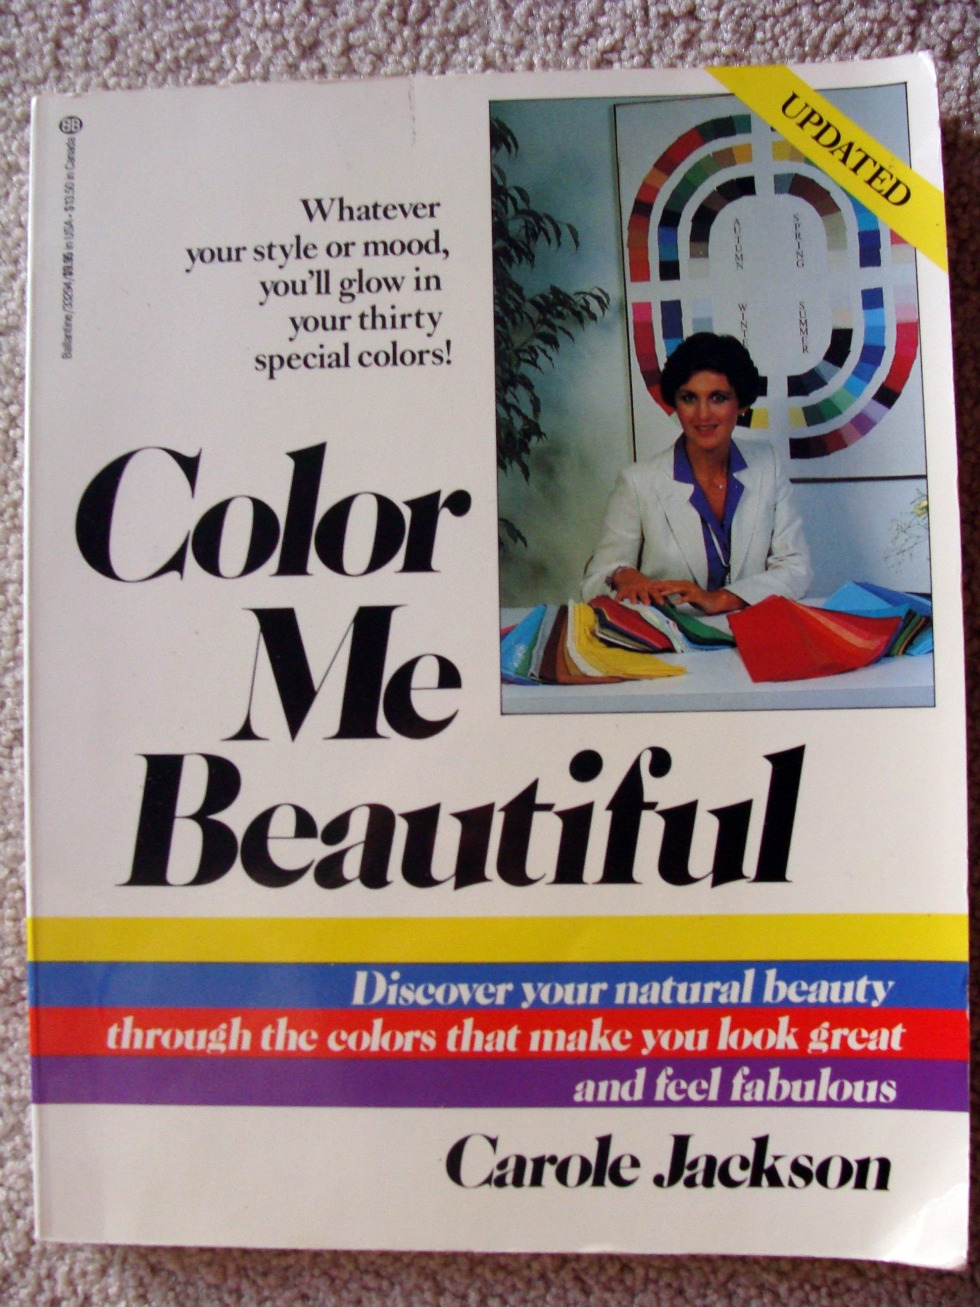 New colour me beautiful book 2016 - Color Me Beautiful By Carole Jackson 1984 I Ve Seen My Friends Talk About This Book And I Have Wanted To Learn About People S Seasons Including My